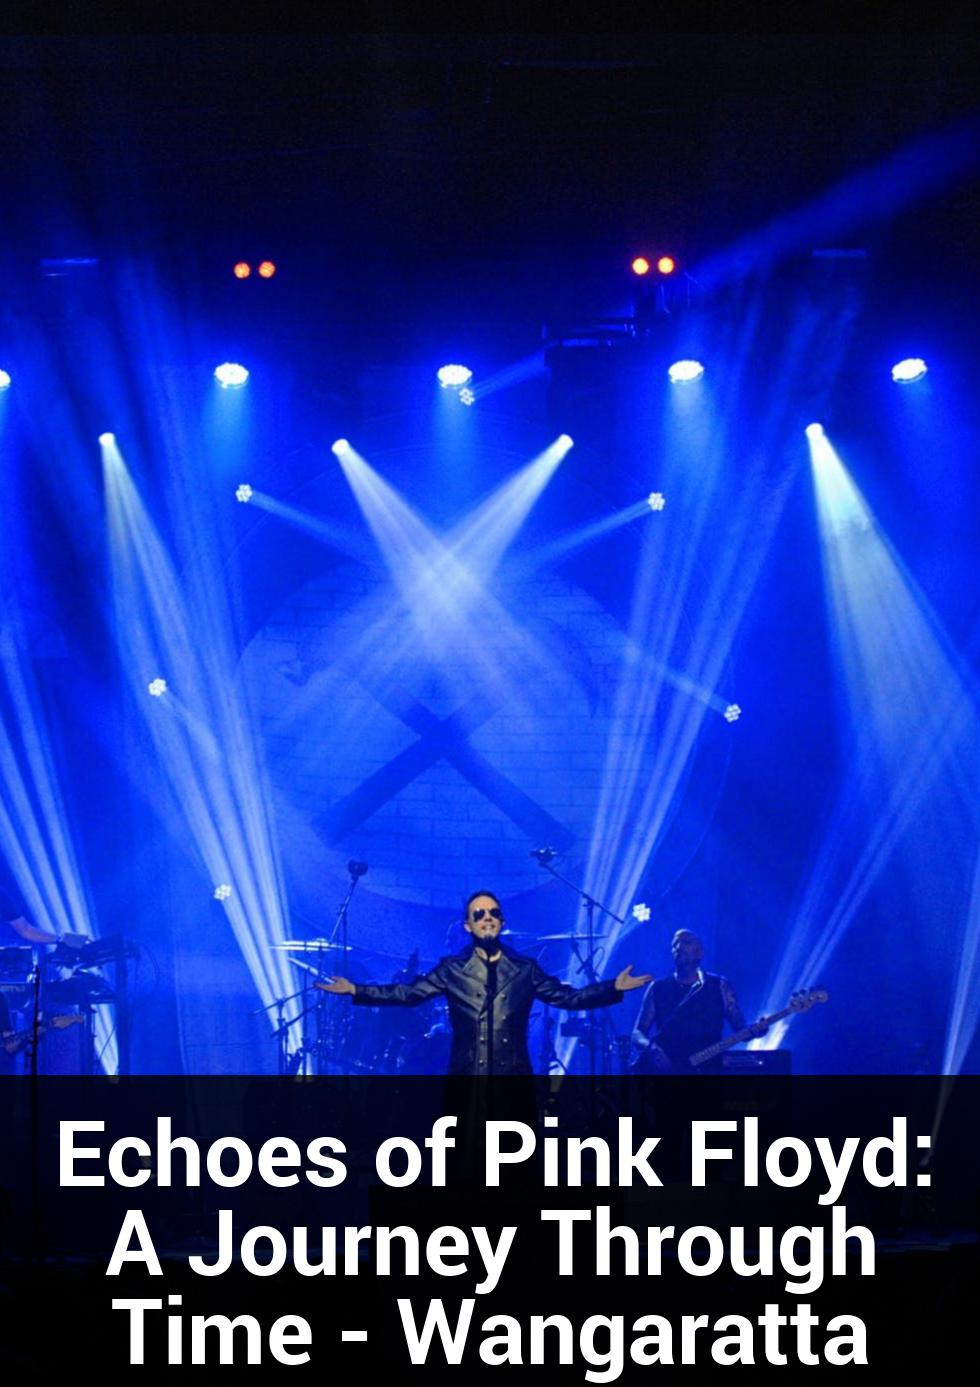 Echoes of Pink Floyd: A Journey Through Time - Wangaratta at Wangaratta Performing Arts Centre